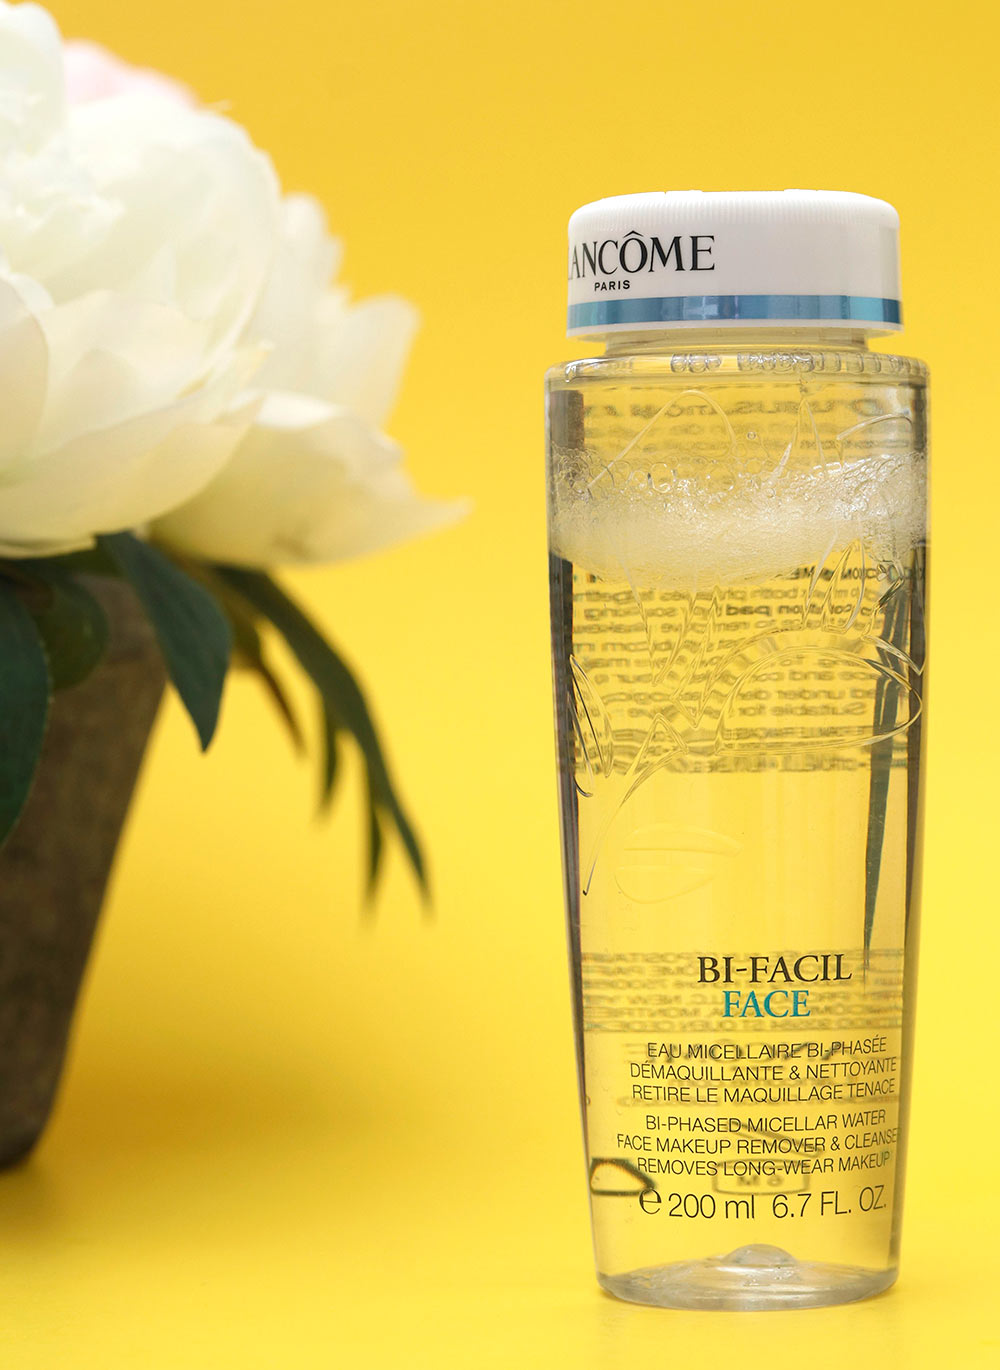 lancome bi facil face makeup remover review